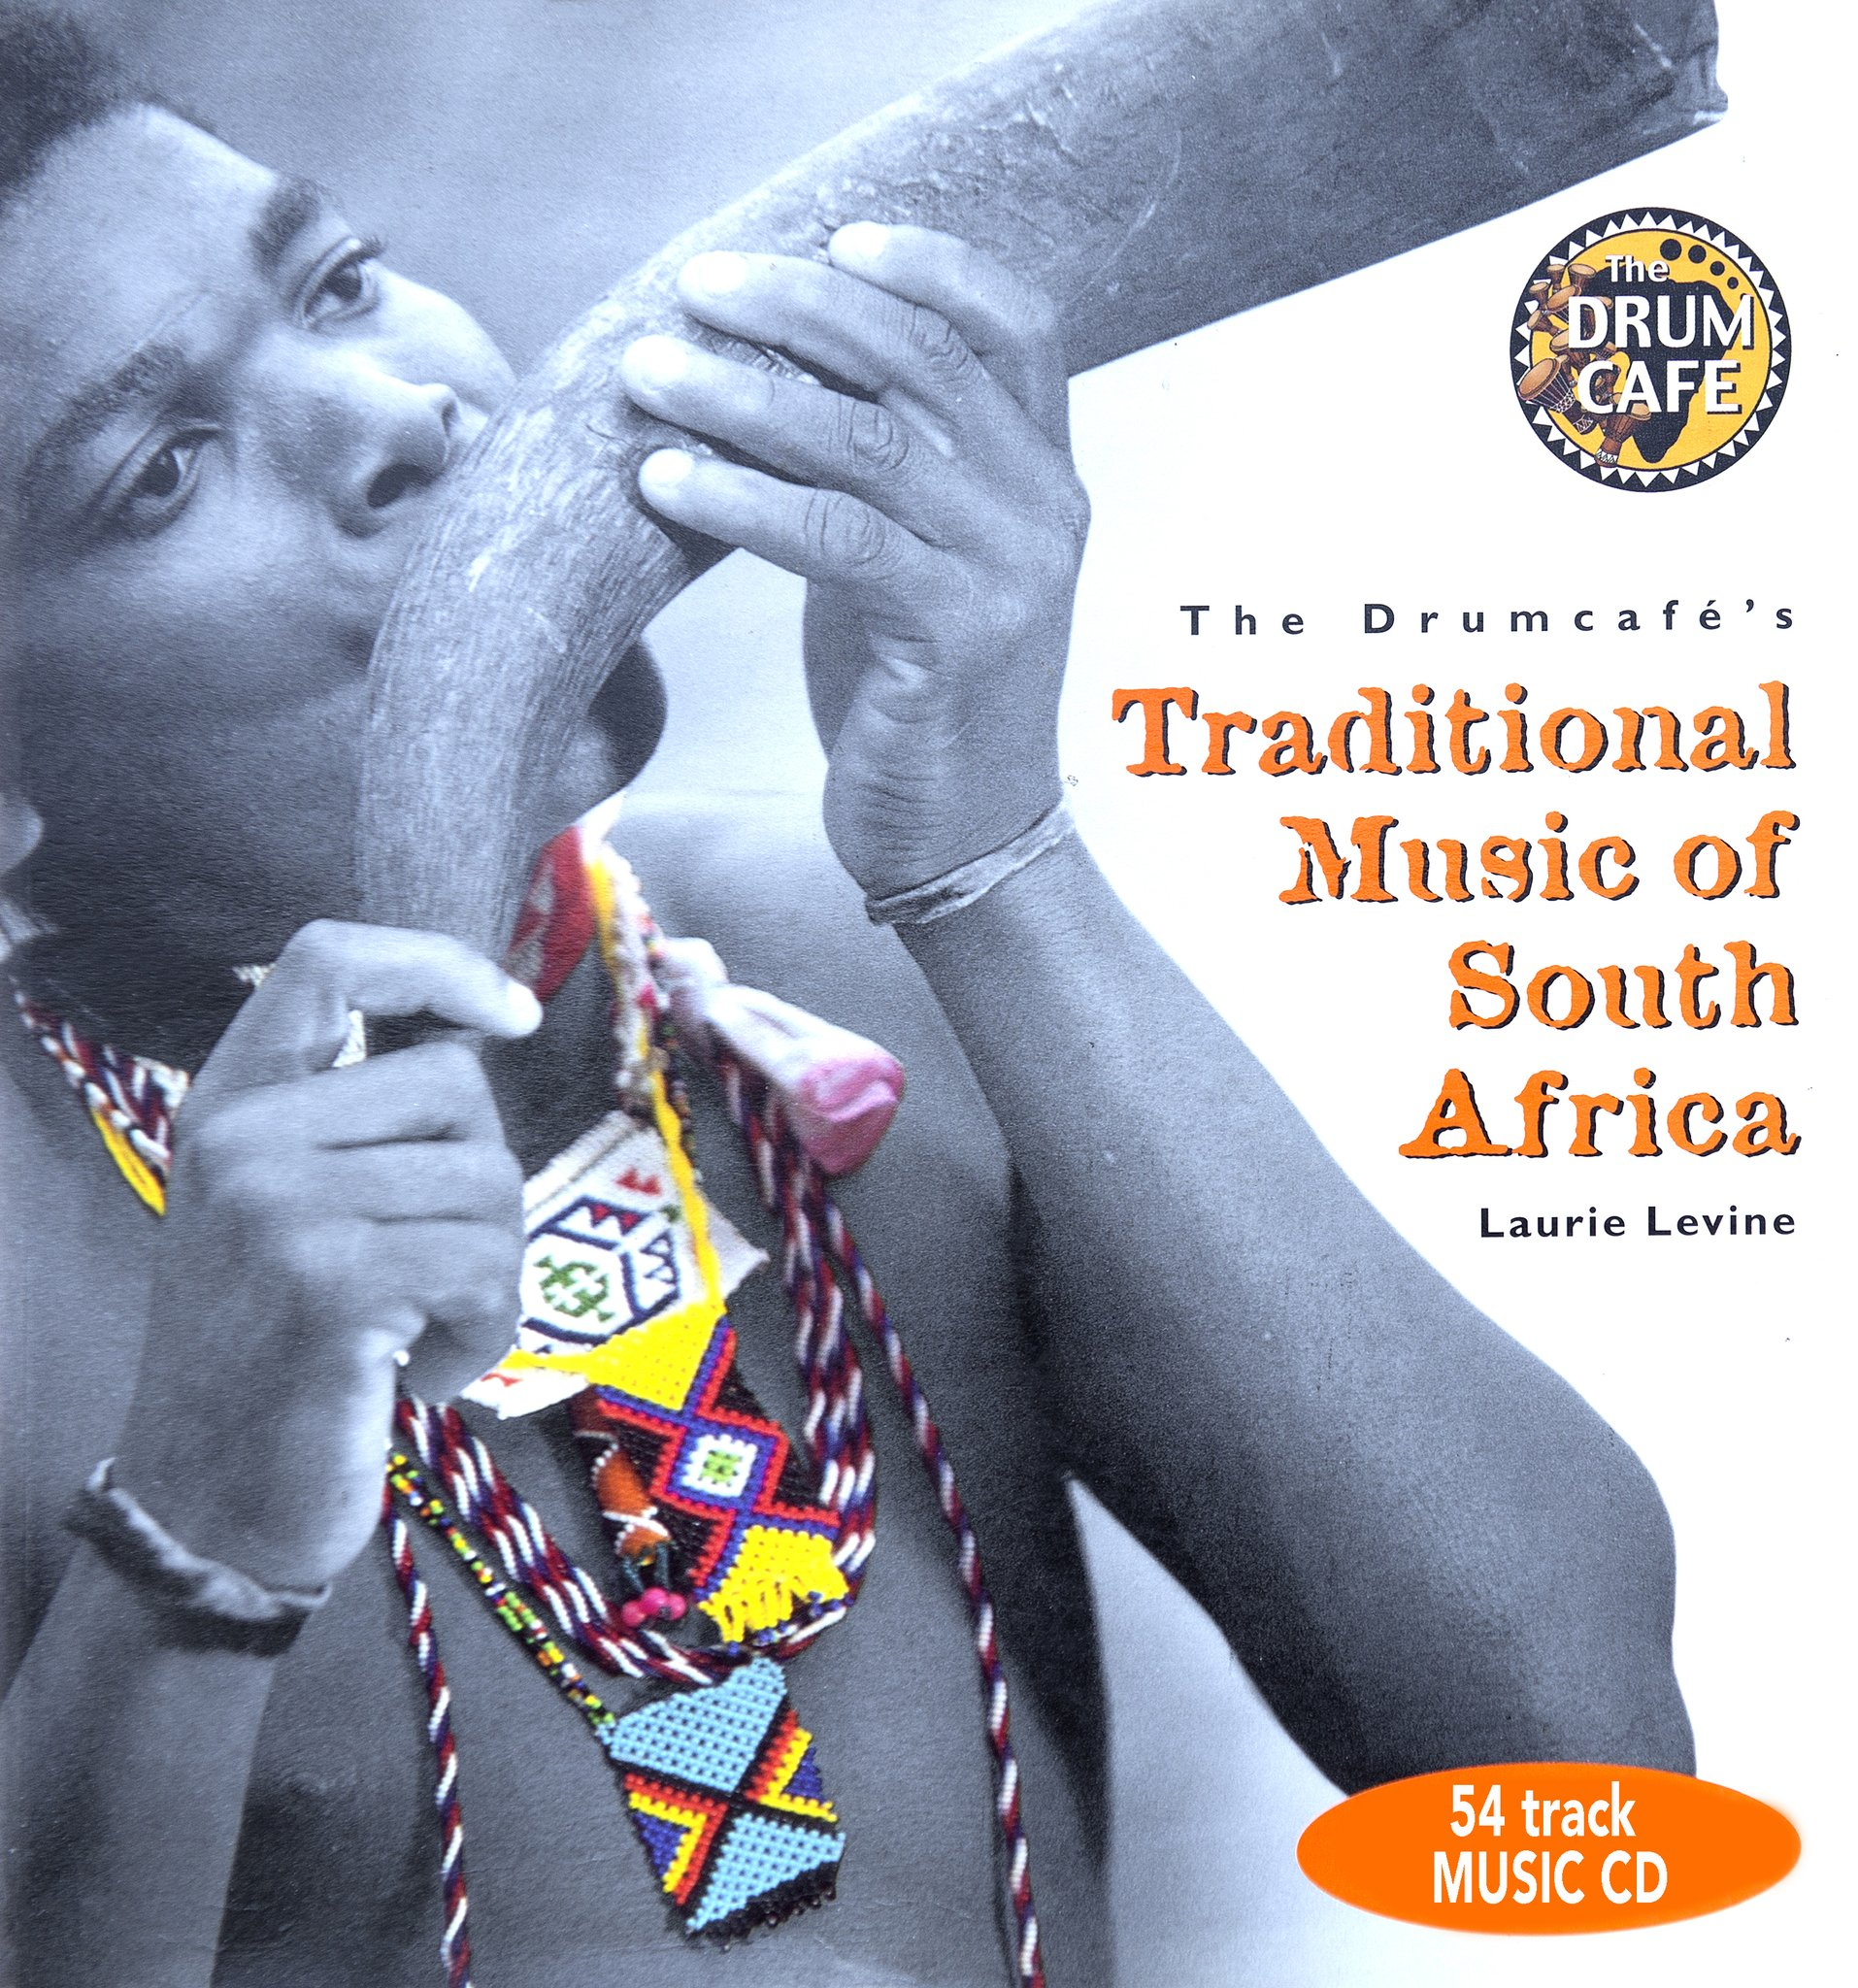 Music tracks from the book Traditional Music of South Africa